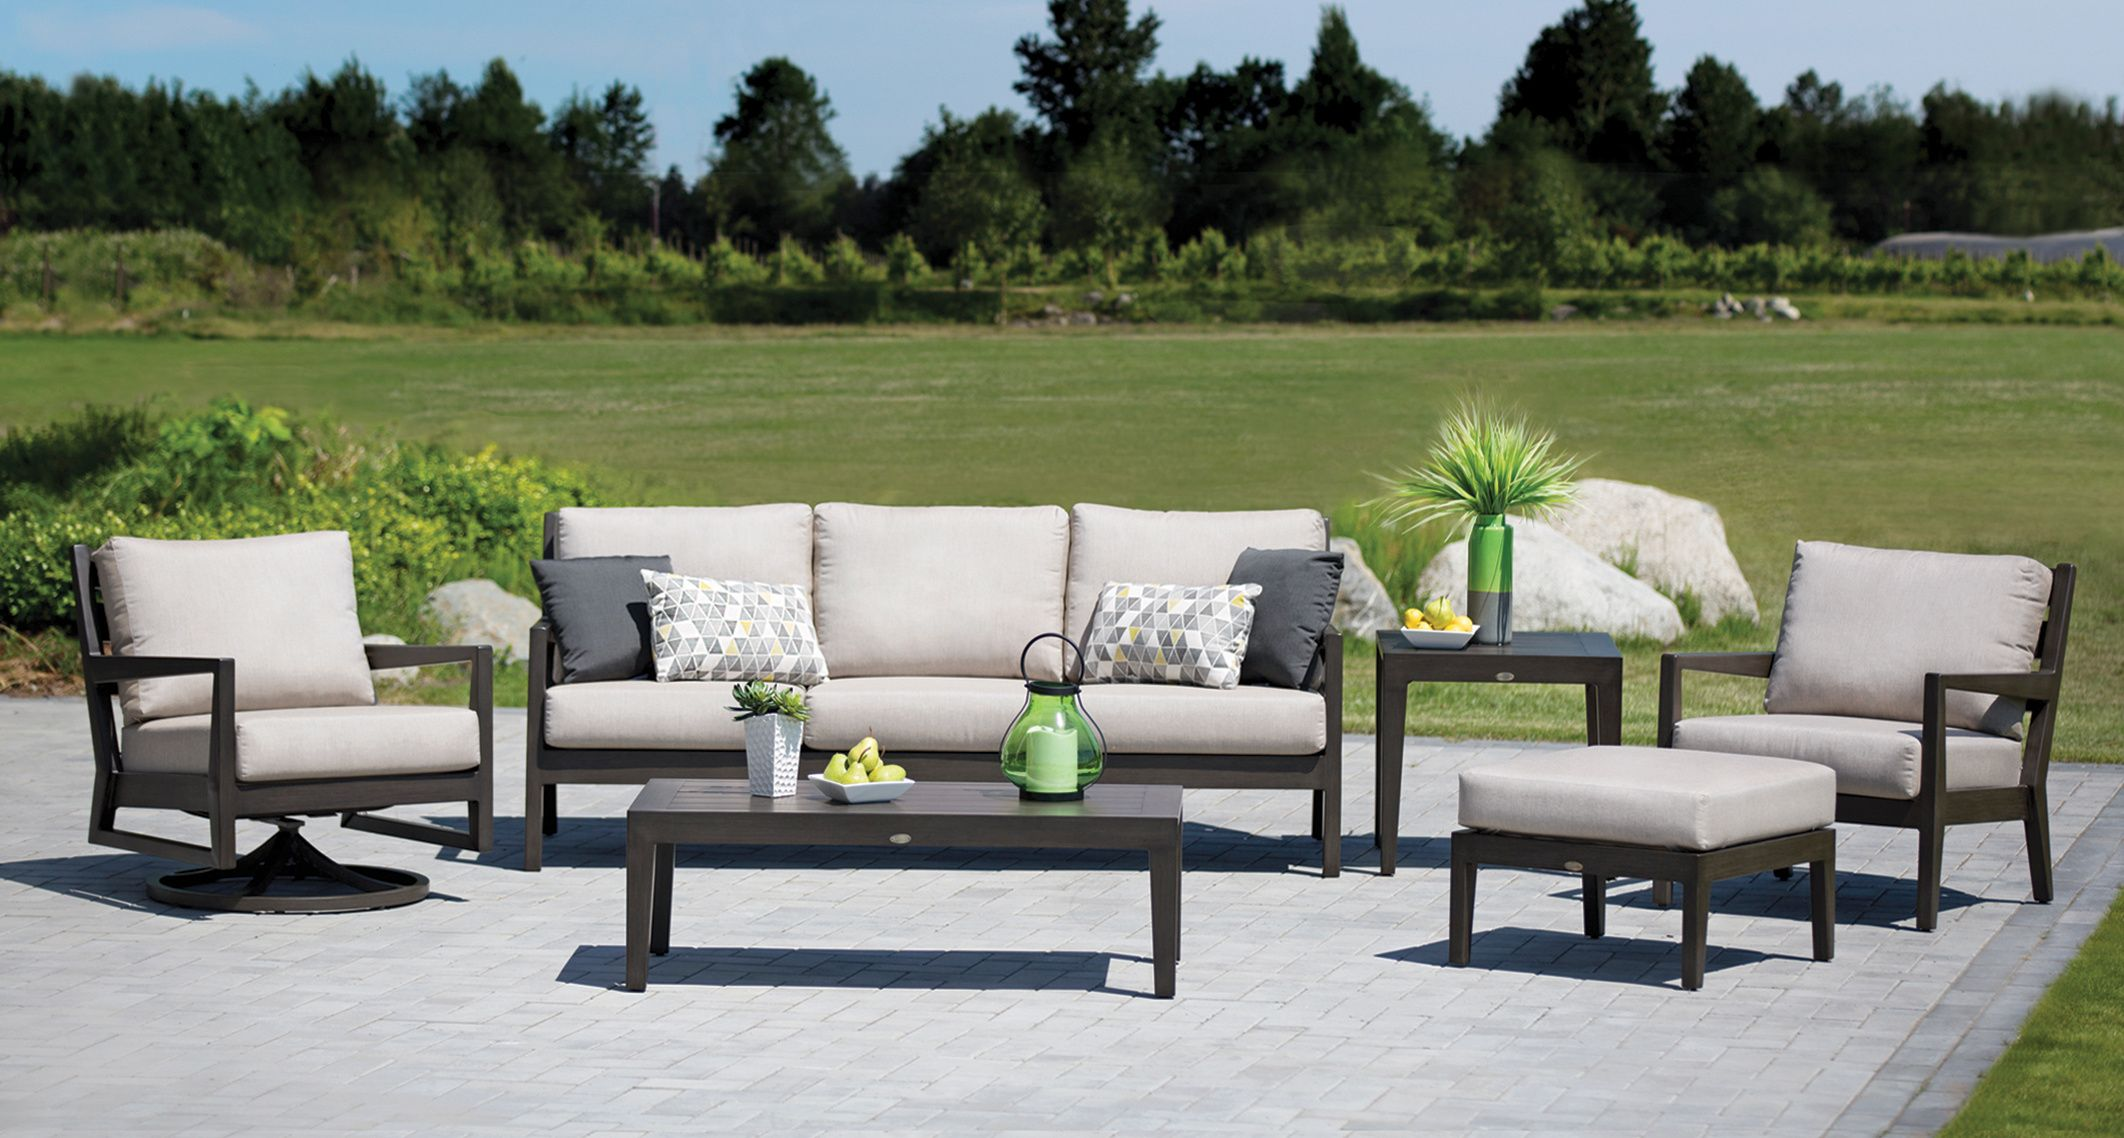 Outdoor Furniture Vancouver Wa Cool Apartment Check More At Http Cacophonouscreations